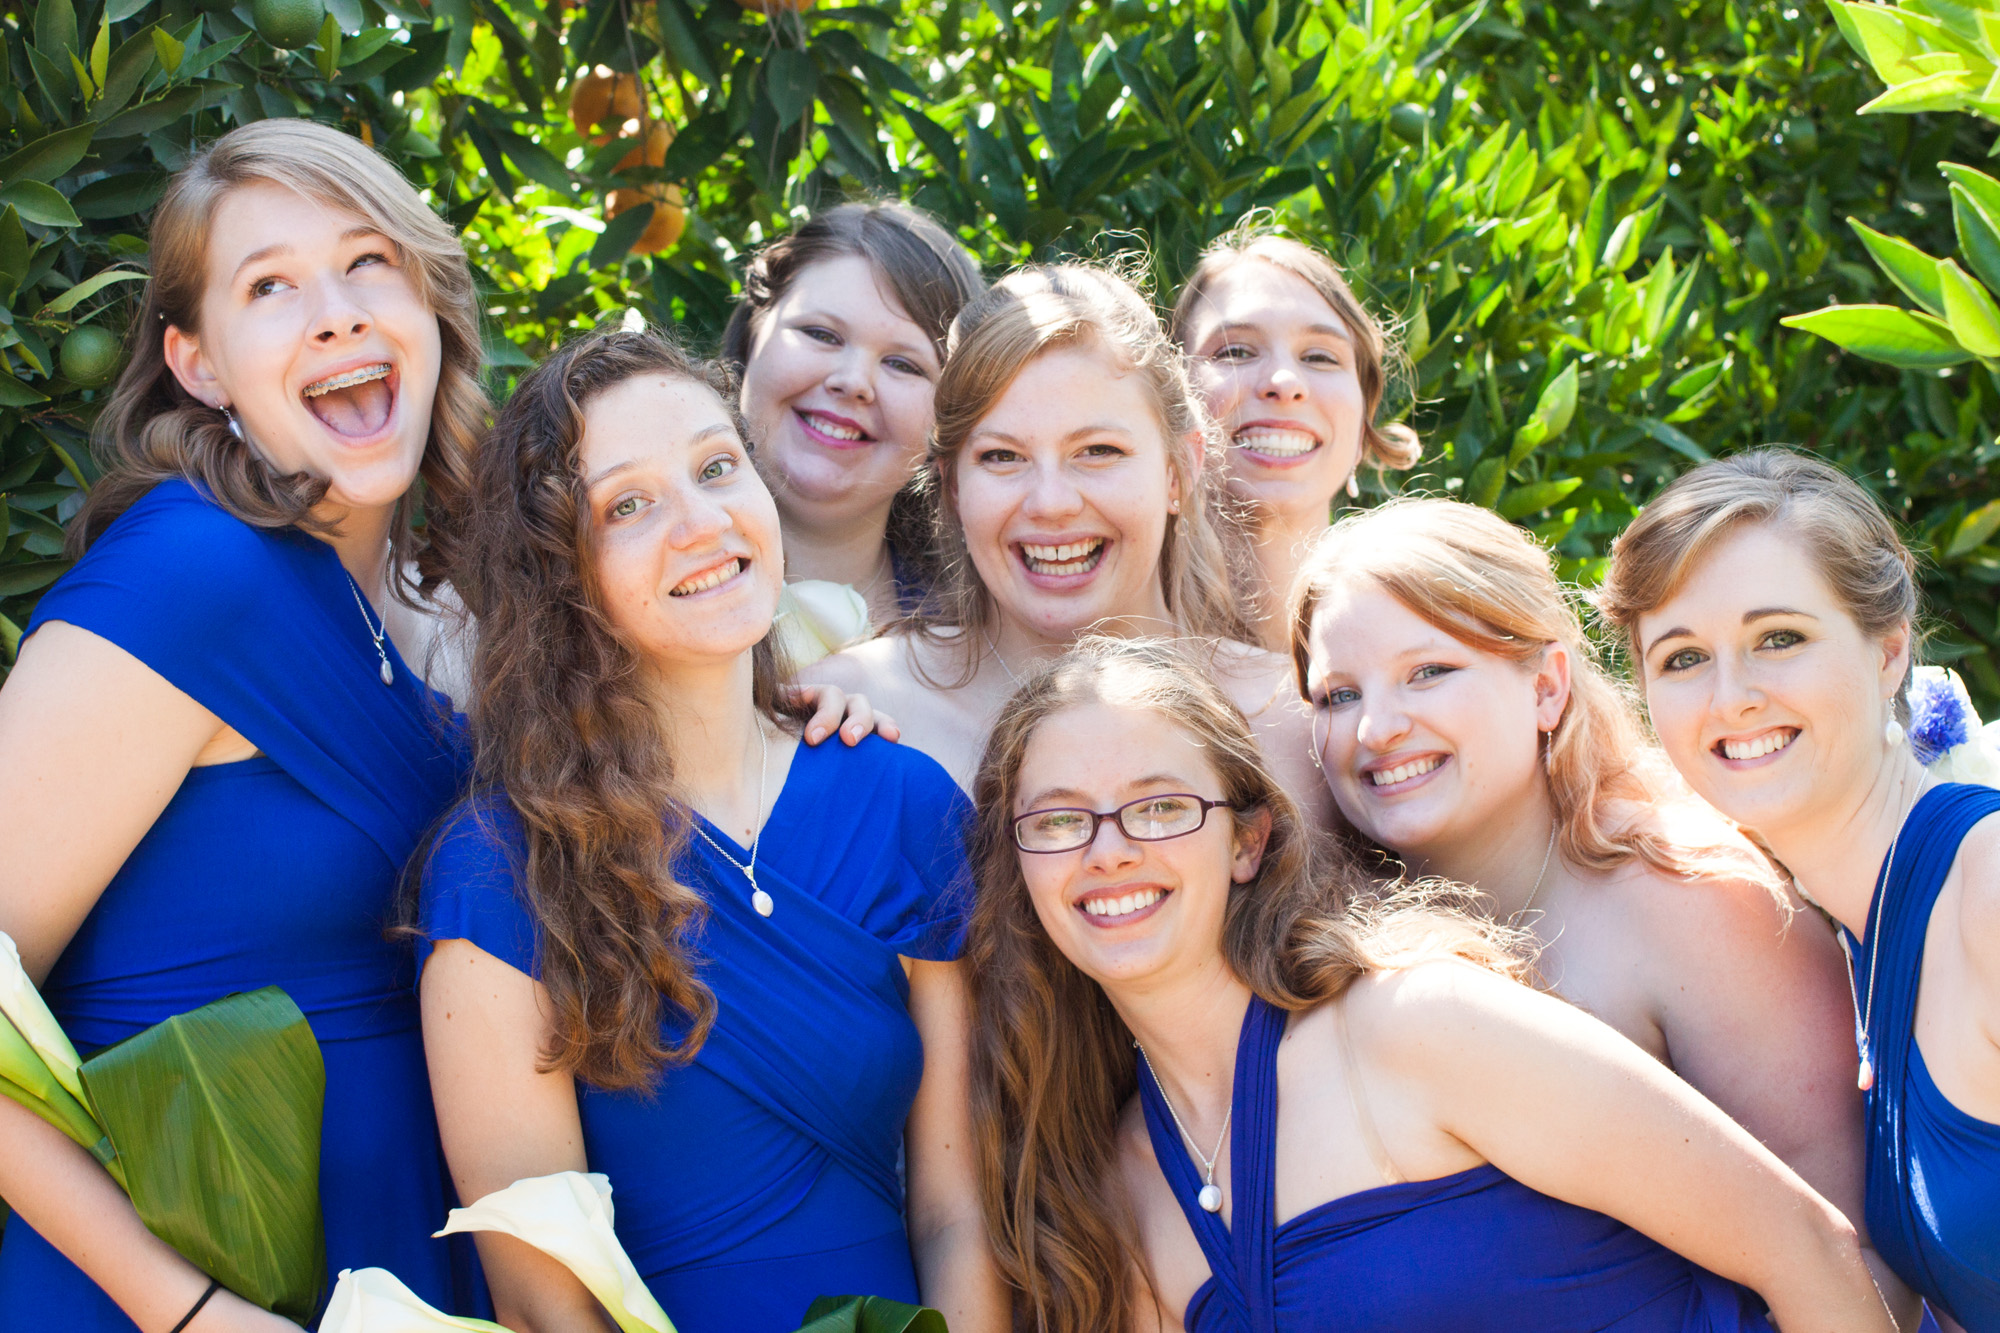 Bride and bridal party - silly